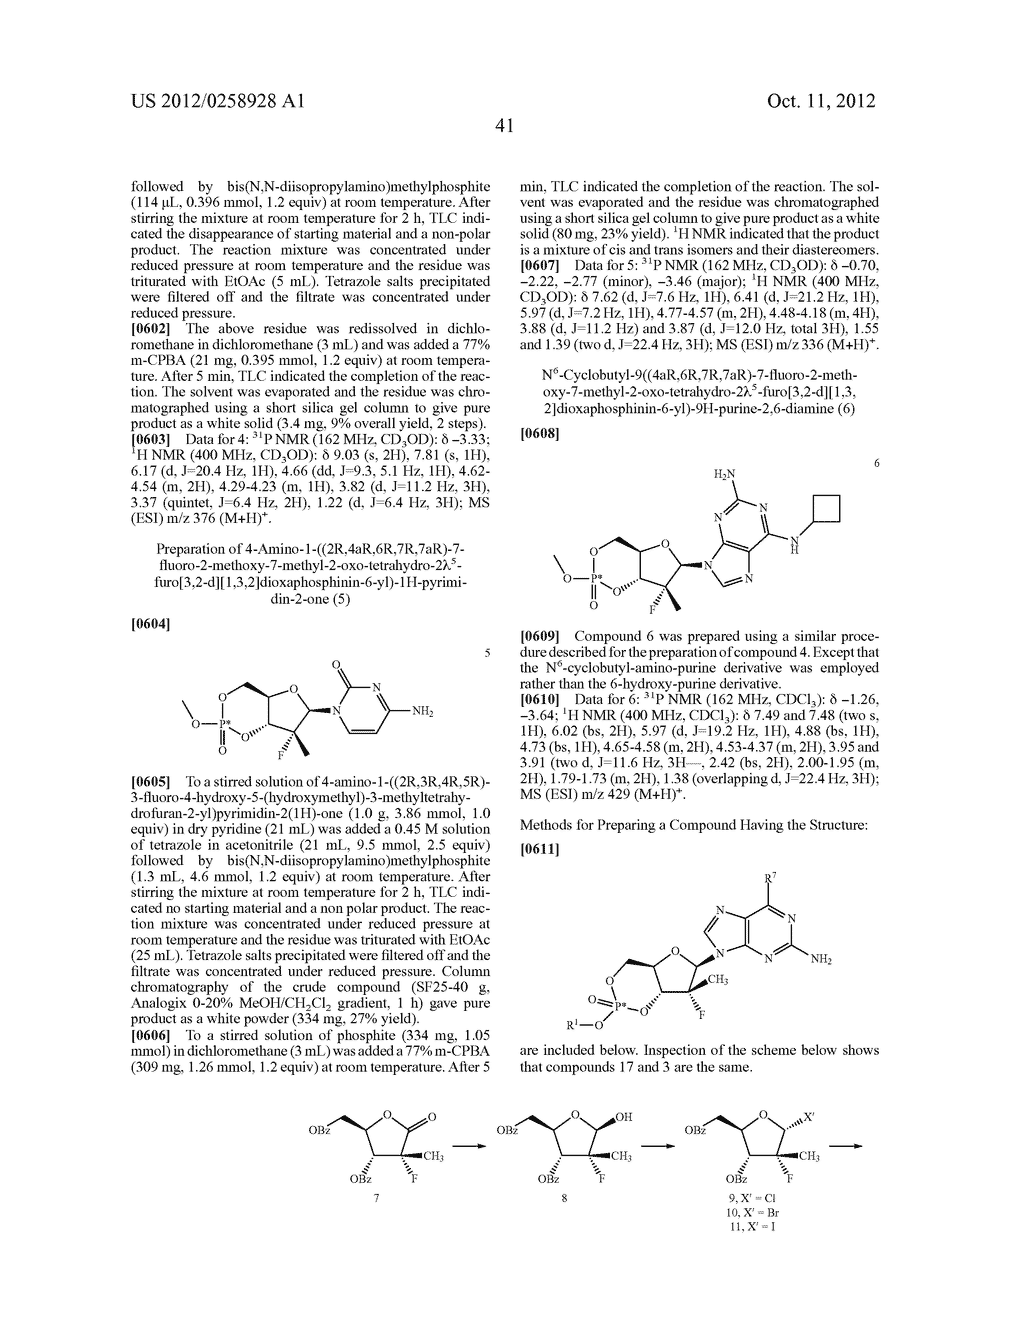 NUCLEOSIDE CYCLICPHOSPHATES - diagram, schematic, and image 42